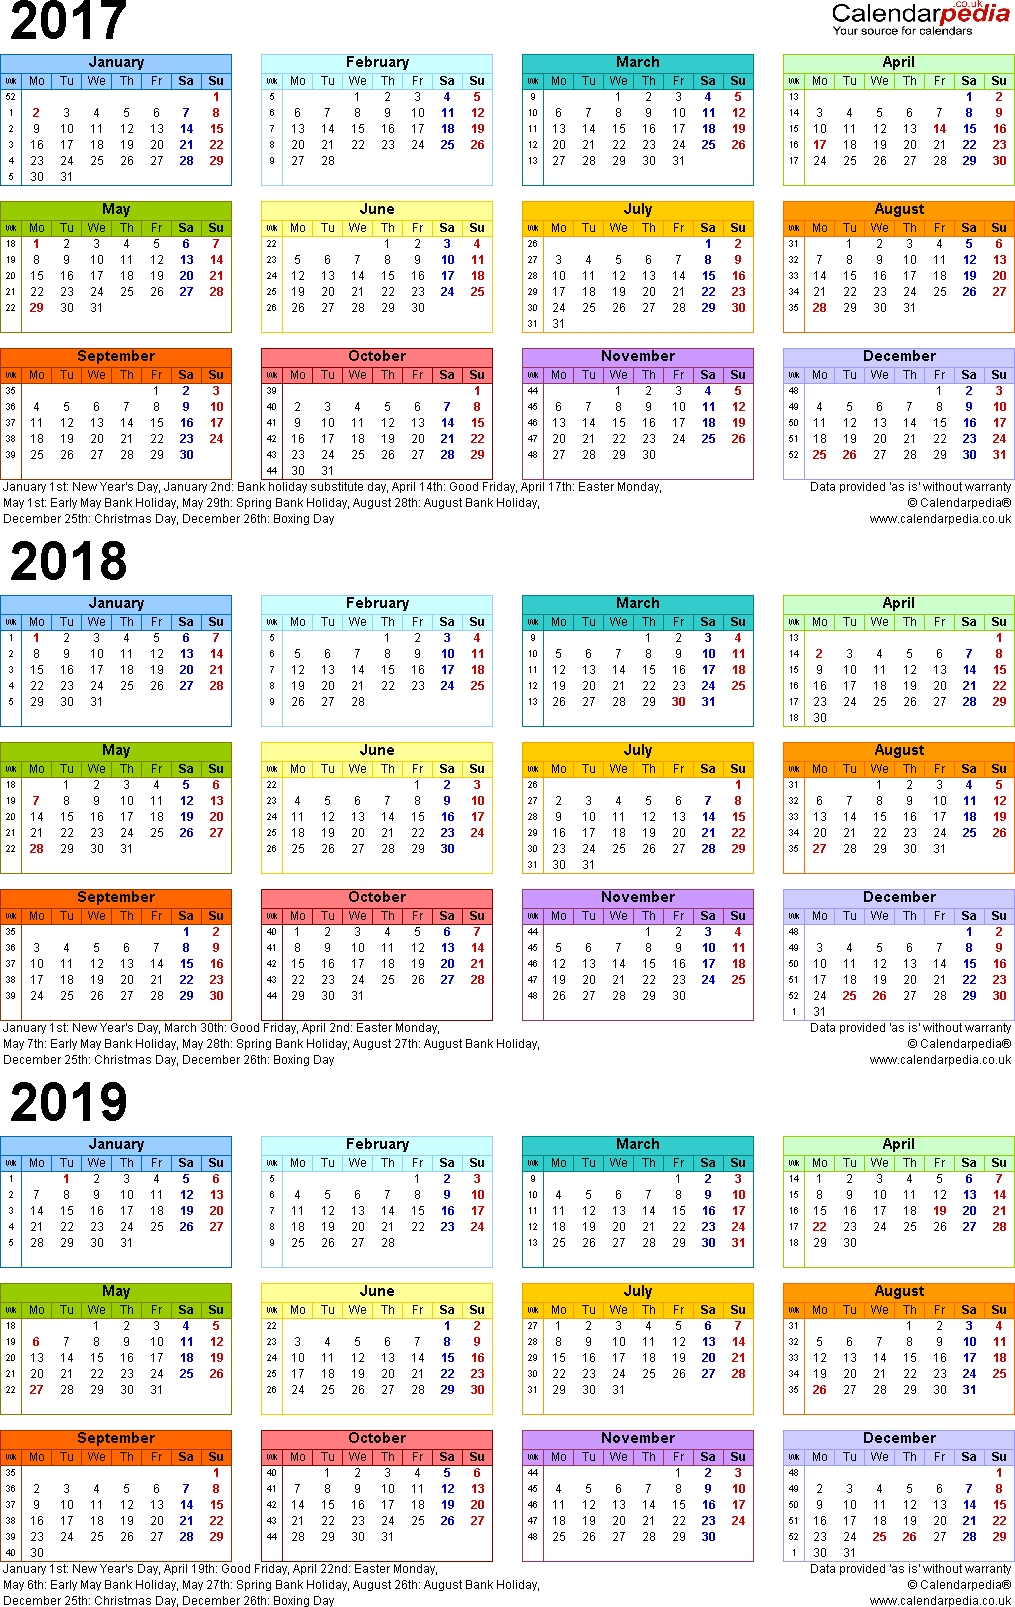 Three Year Calendars For 2017 2018 2019 Uk For Pdf  Xjb